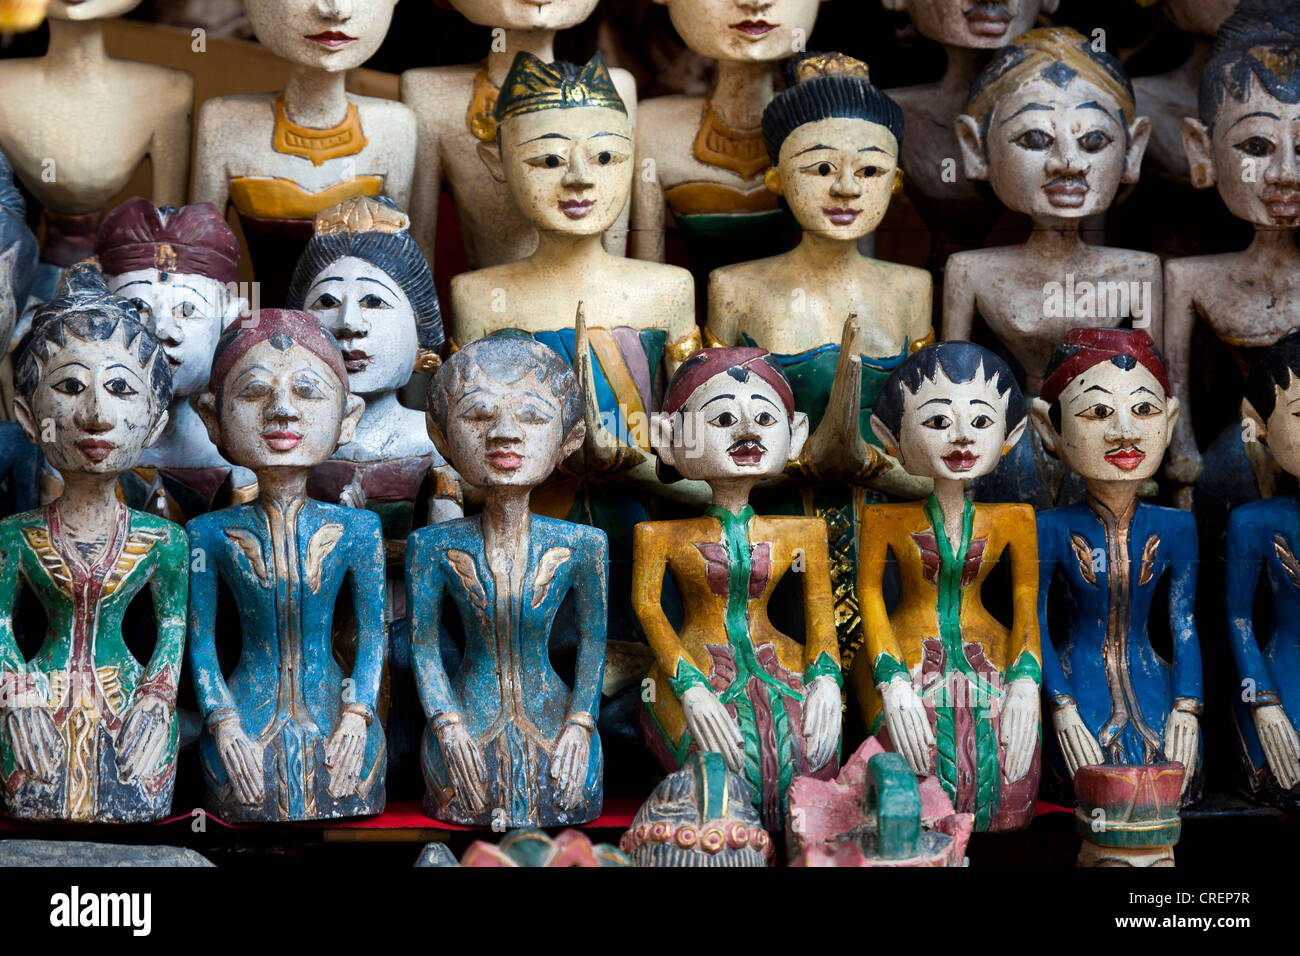 Traditional dolls as souvenirs, Ubud, central Bali, Bali, Indonesia, Southeast Asia, Asia - Stock Image